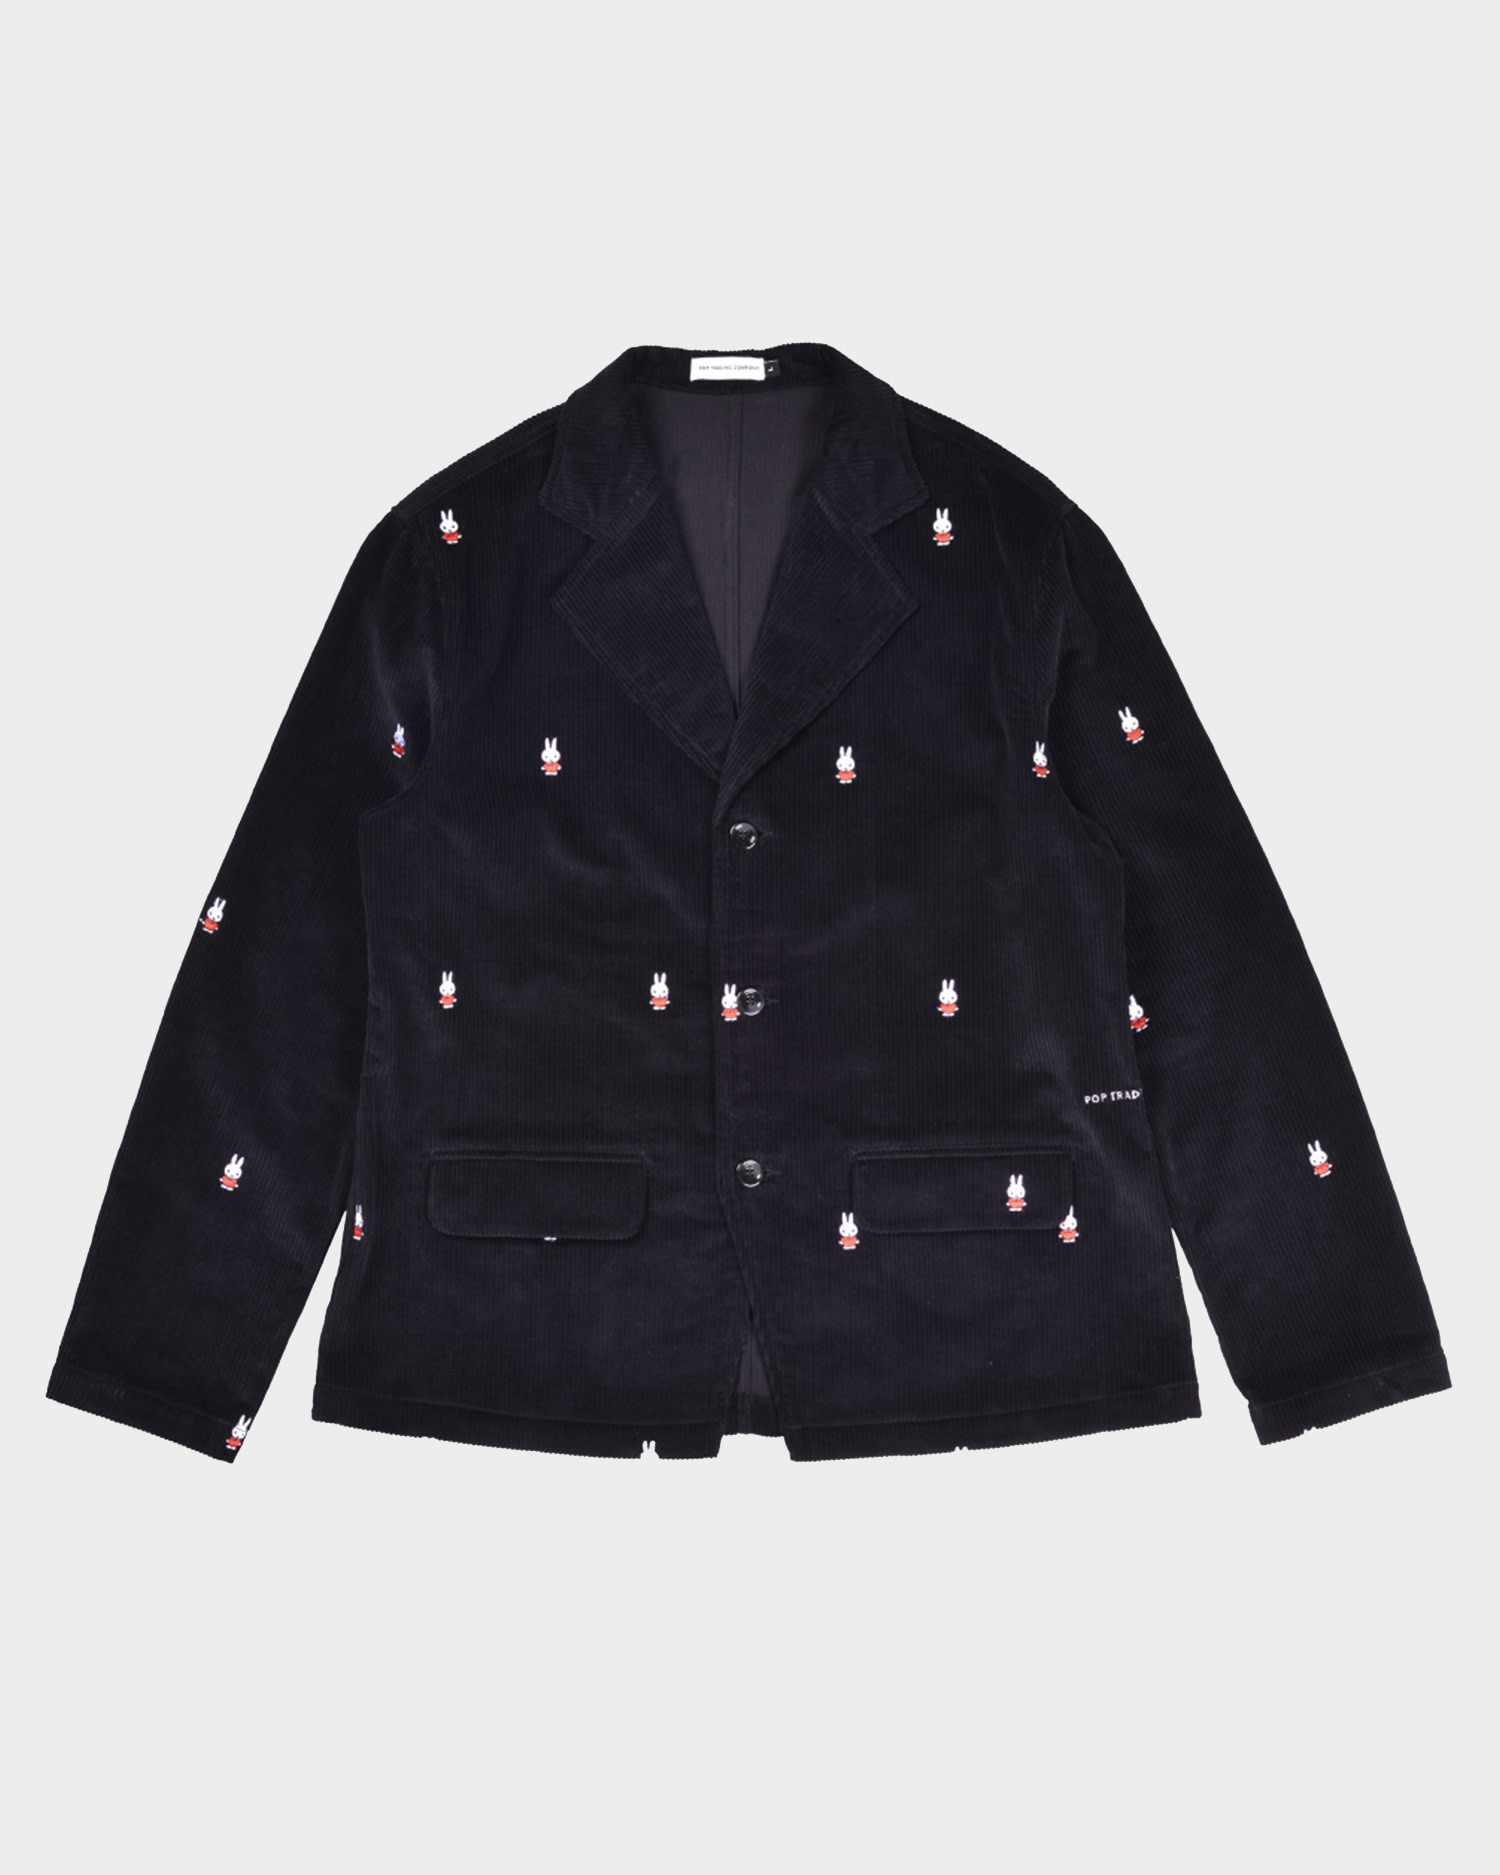 Pop Trading Co X Miffy Suit Jacket